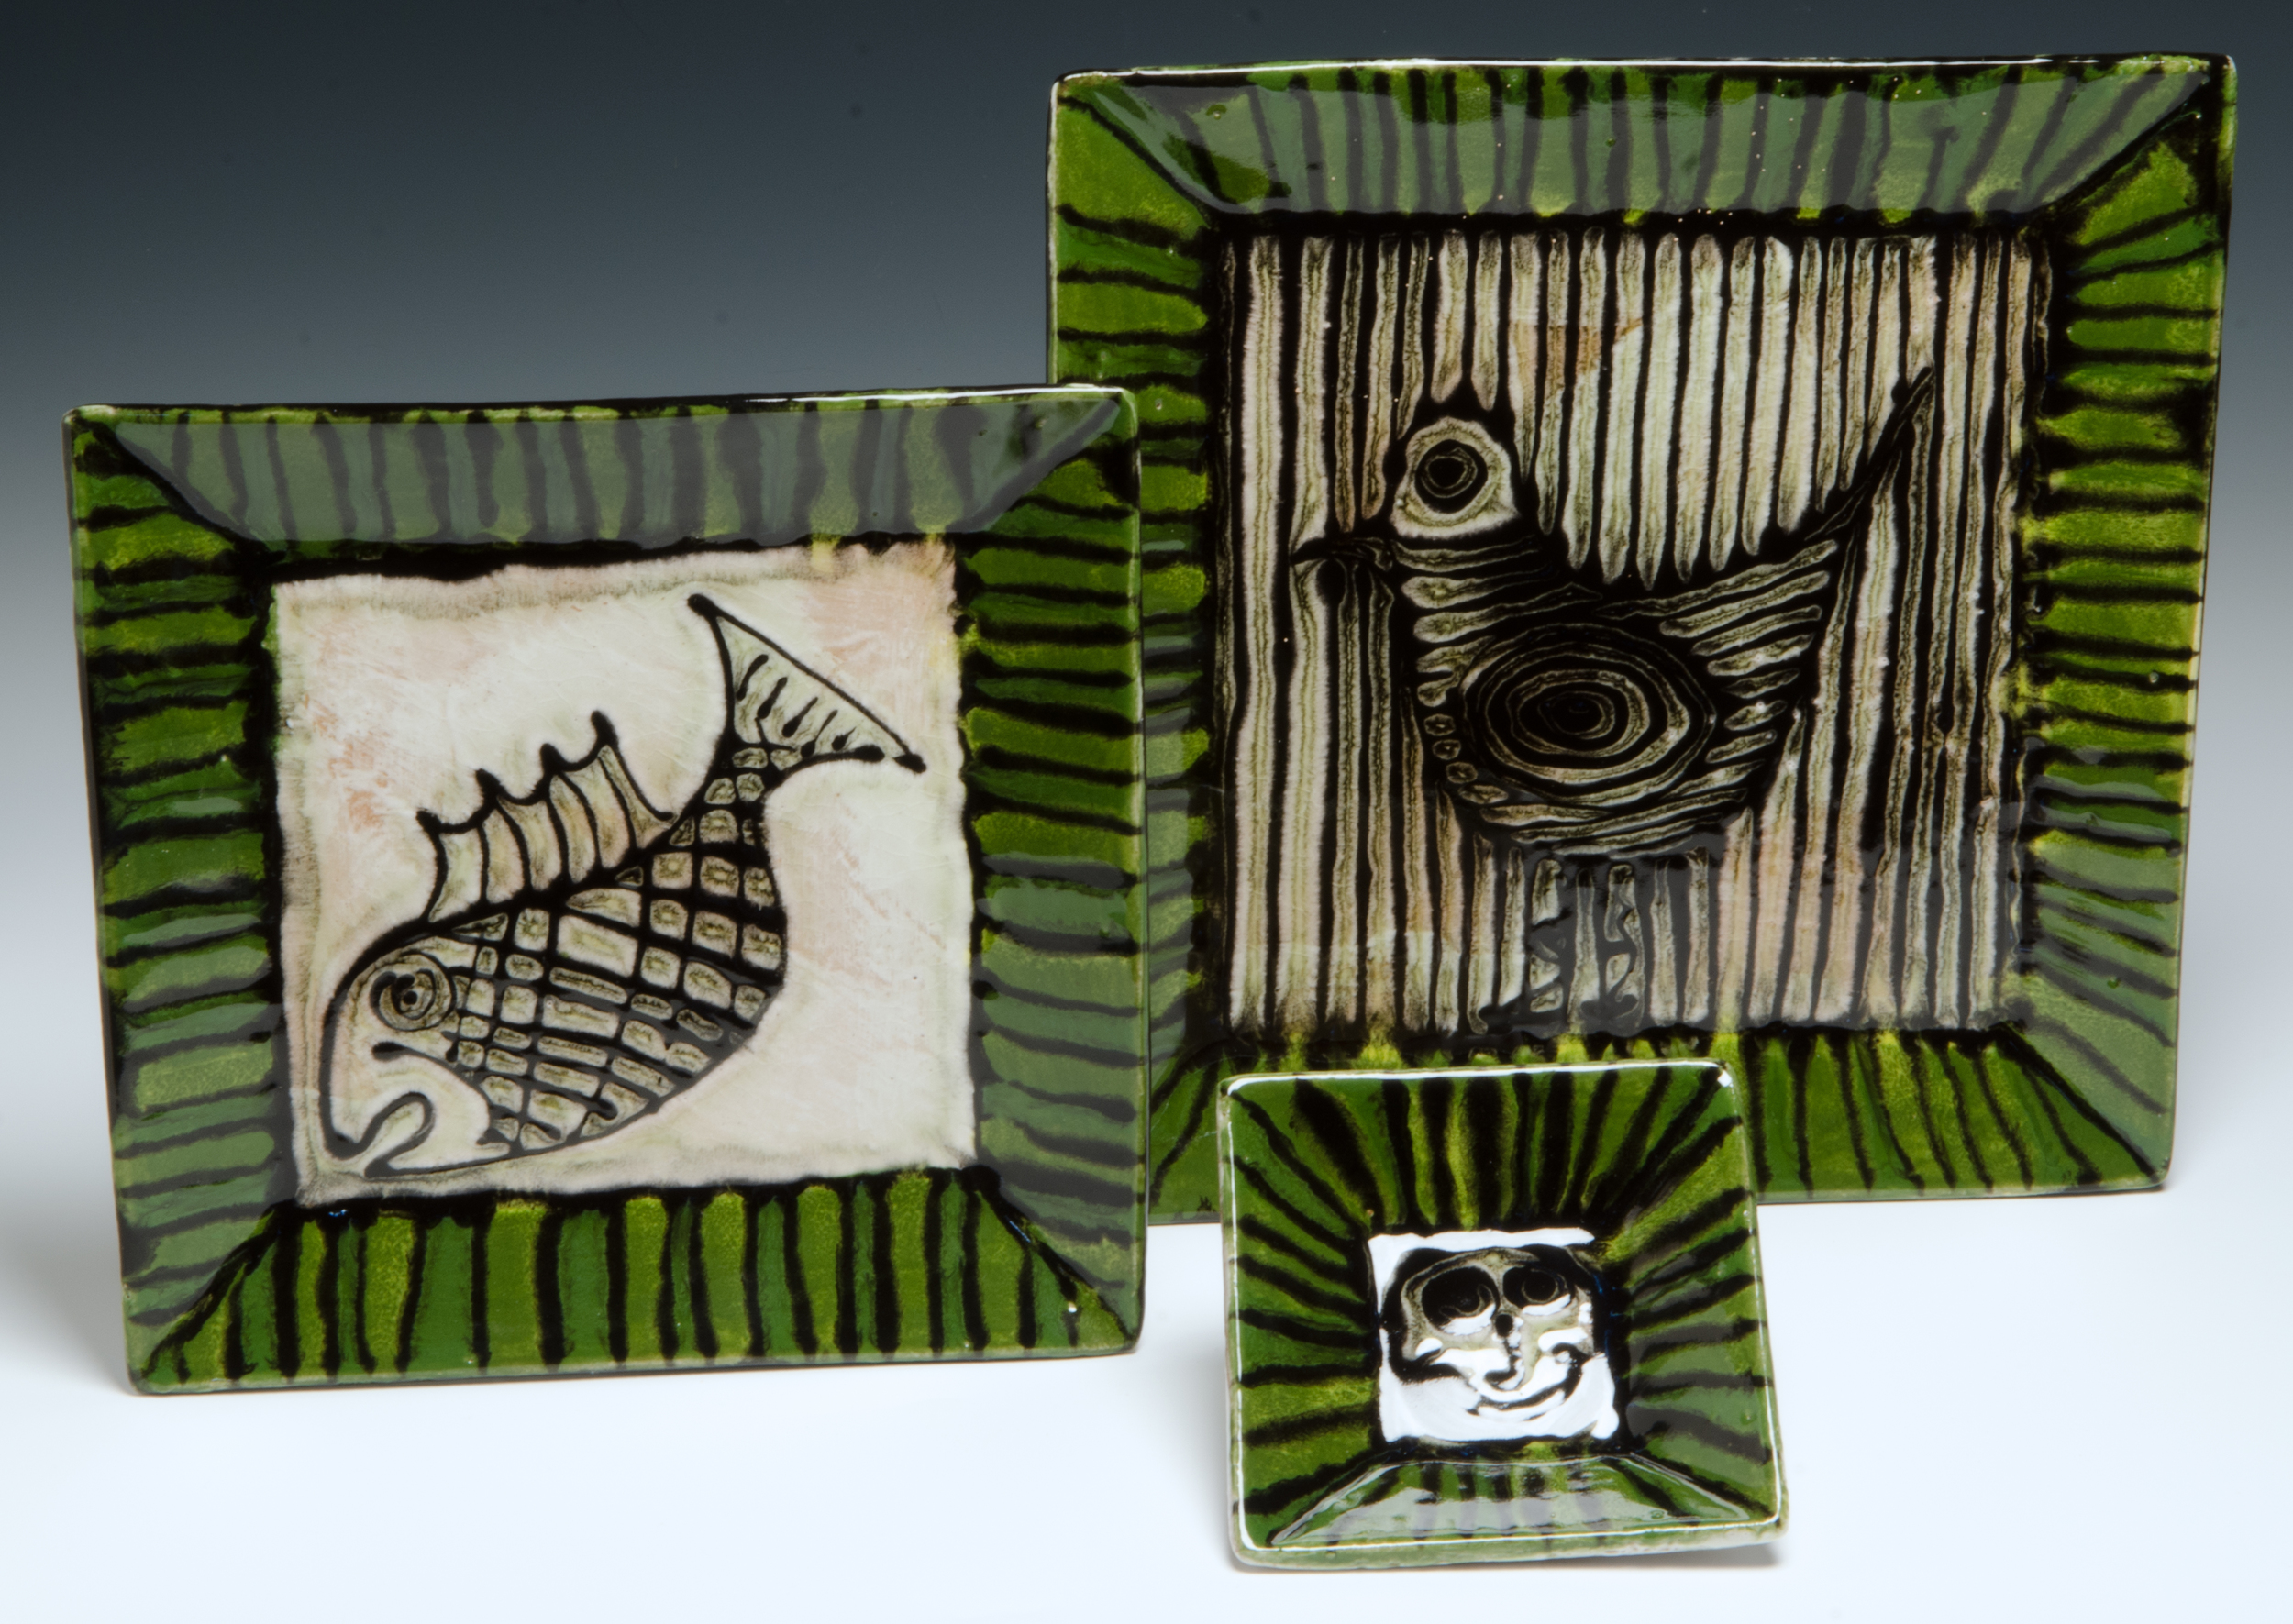 Square dinner plate, small plate, small square dish 2016, stoneware, slaip, stain, glaze 9.5x9.5